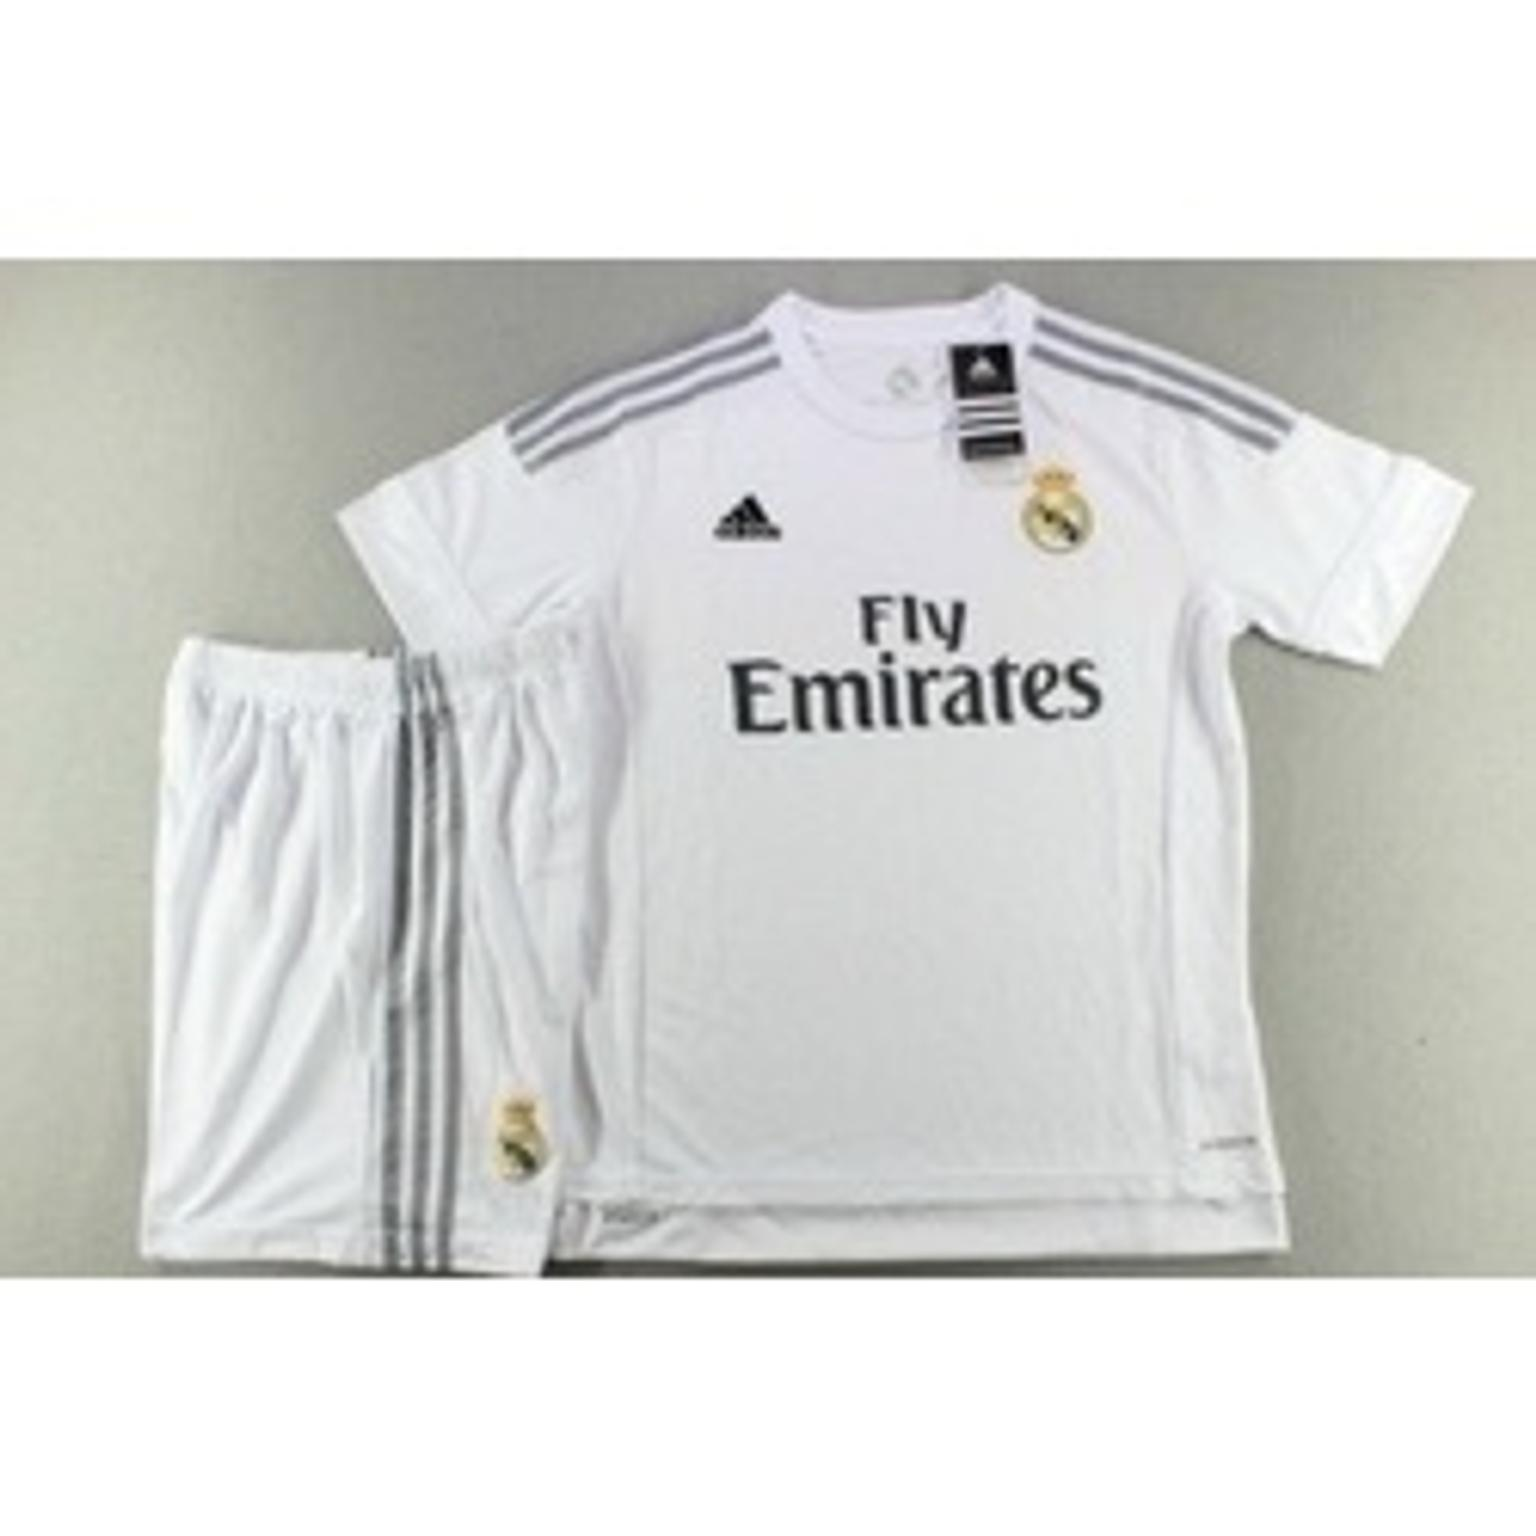 e6258247d Real Madrid Boys kids Football kit. Ronaldo7 in BD3 Bradford for £22 for  sale - Shpock